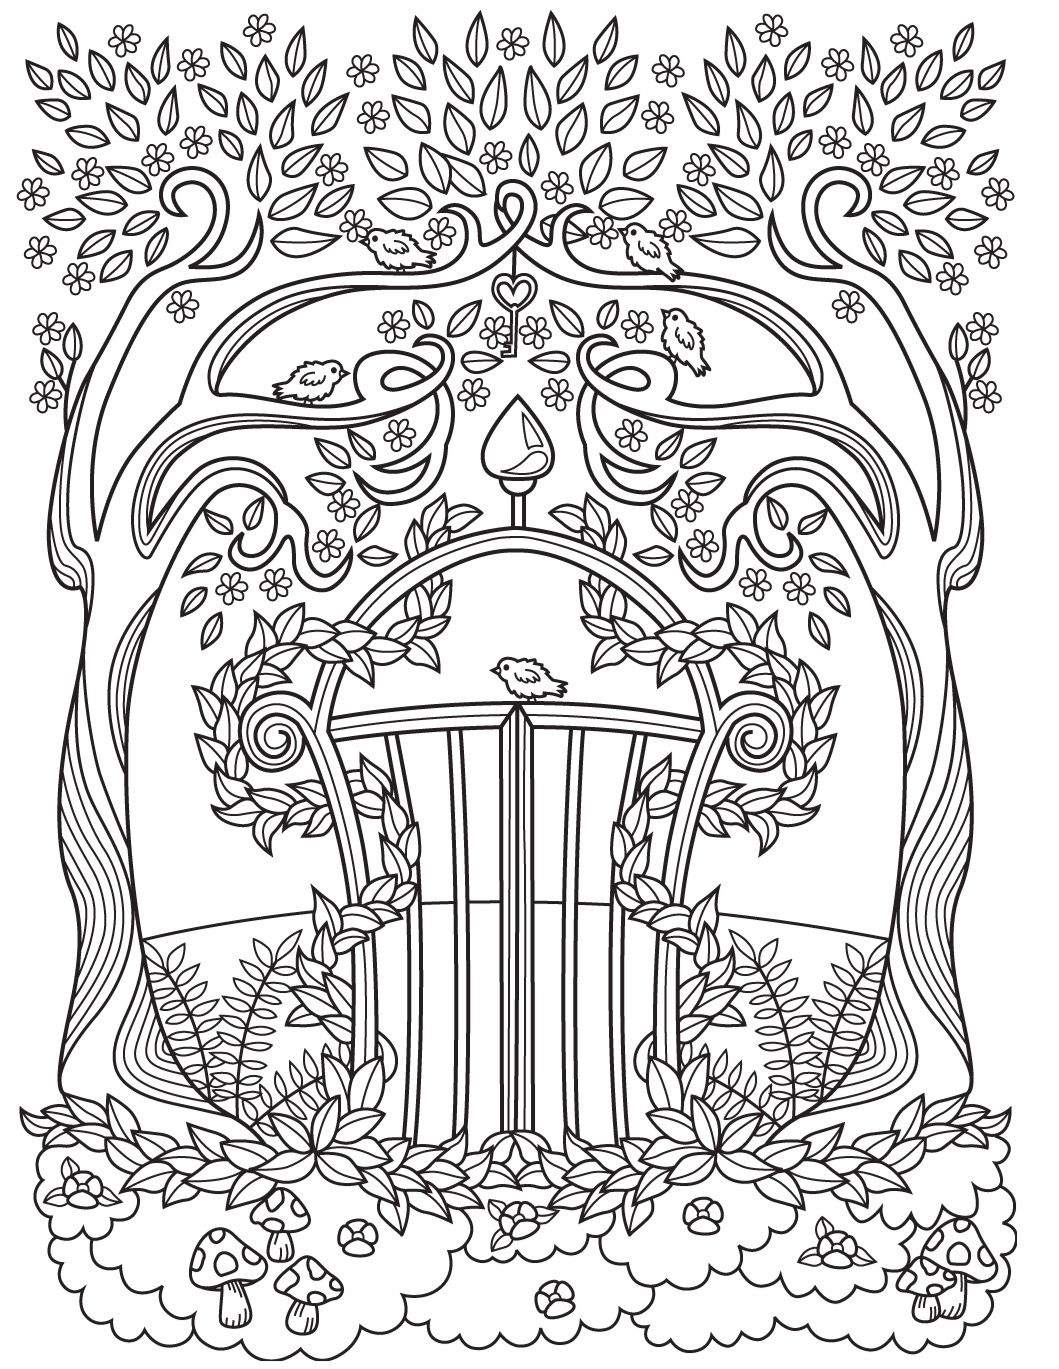 Gardens Colorish Coloring Book App For Adults Mandala Relax By Goodsofttech Mandala Coloring Pages Coloring Books Cool Coloring Pages